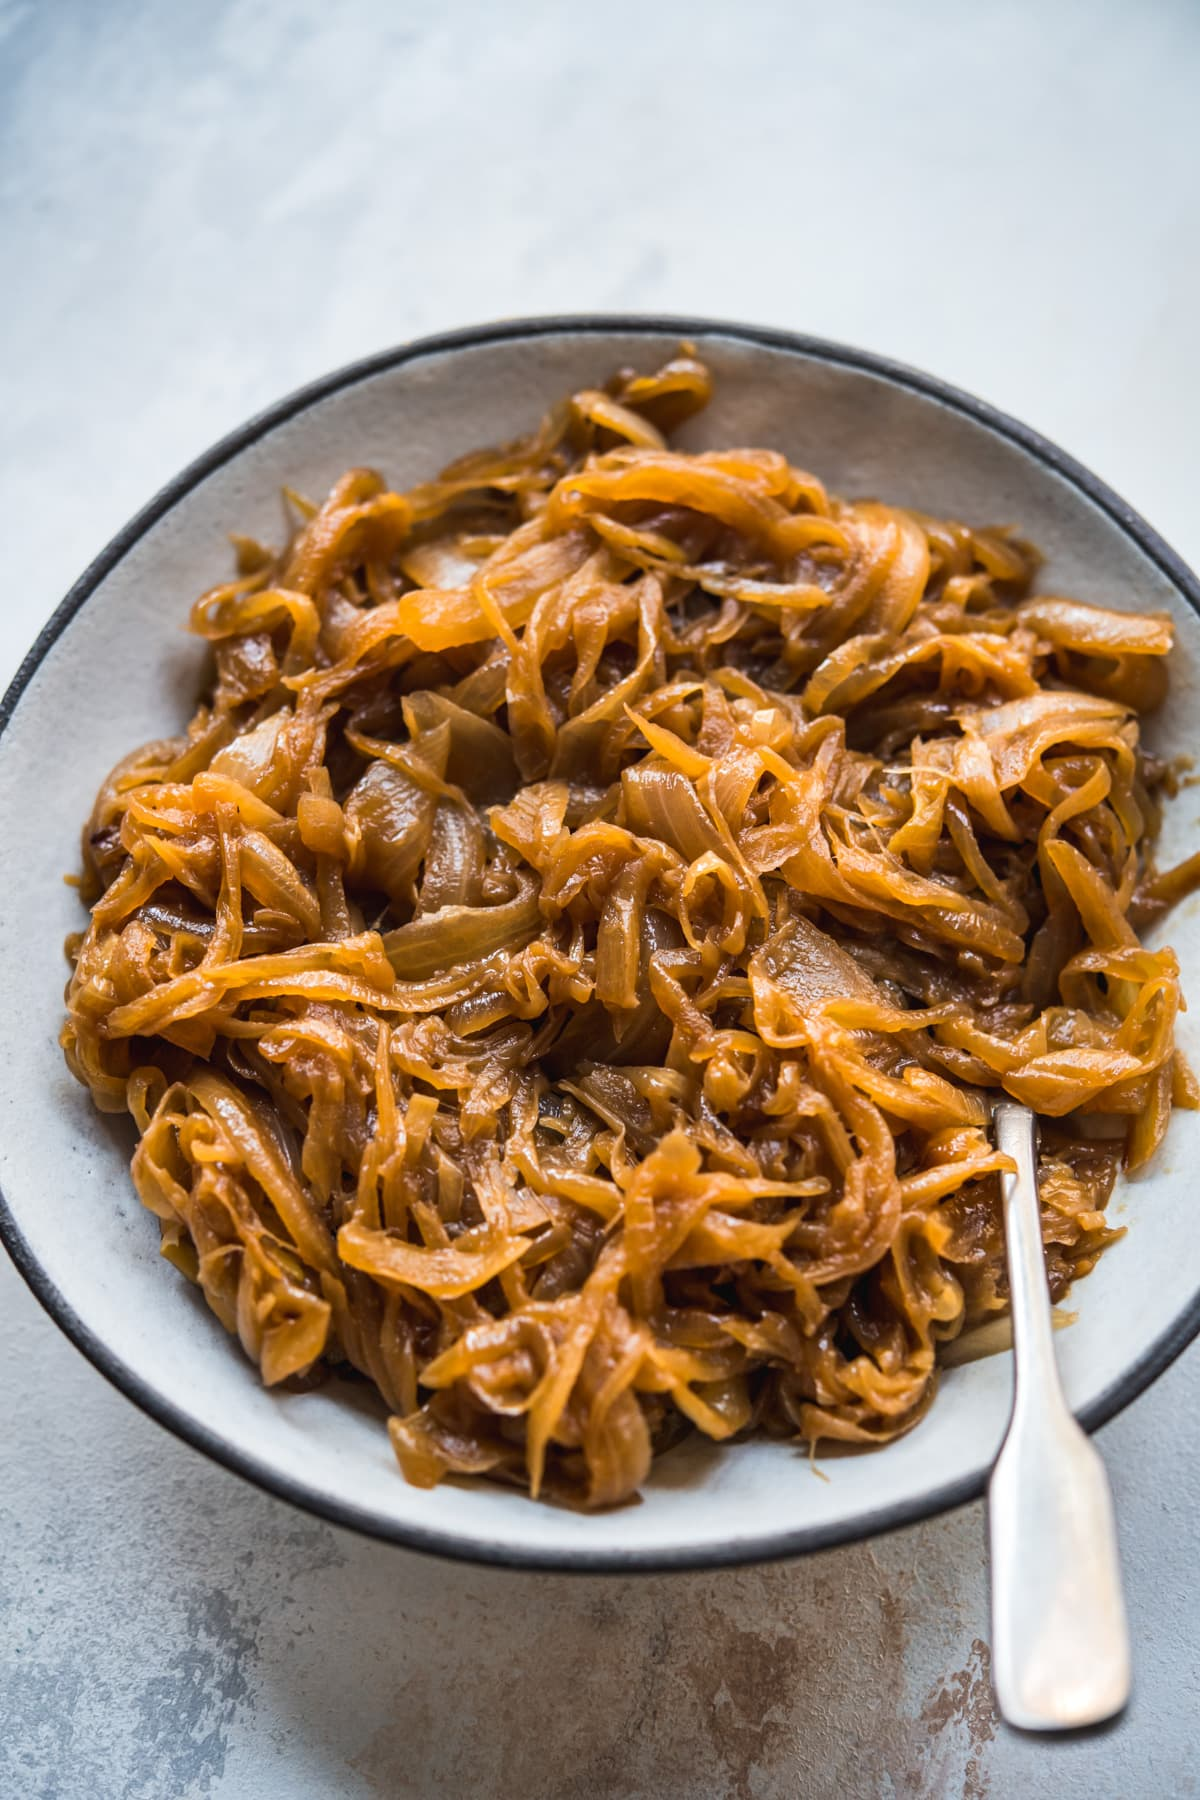 close up of caramelized onions in a bowl.